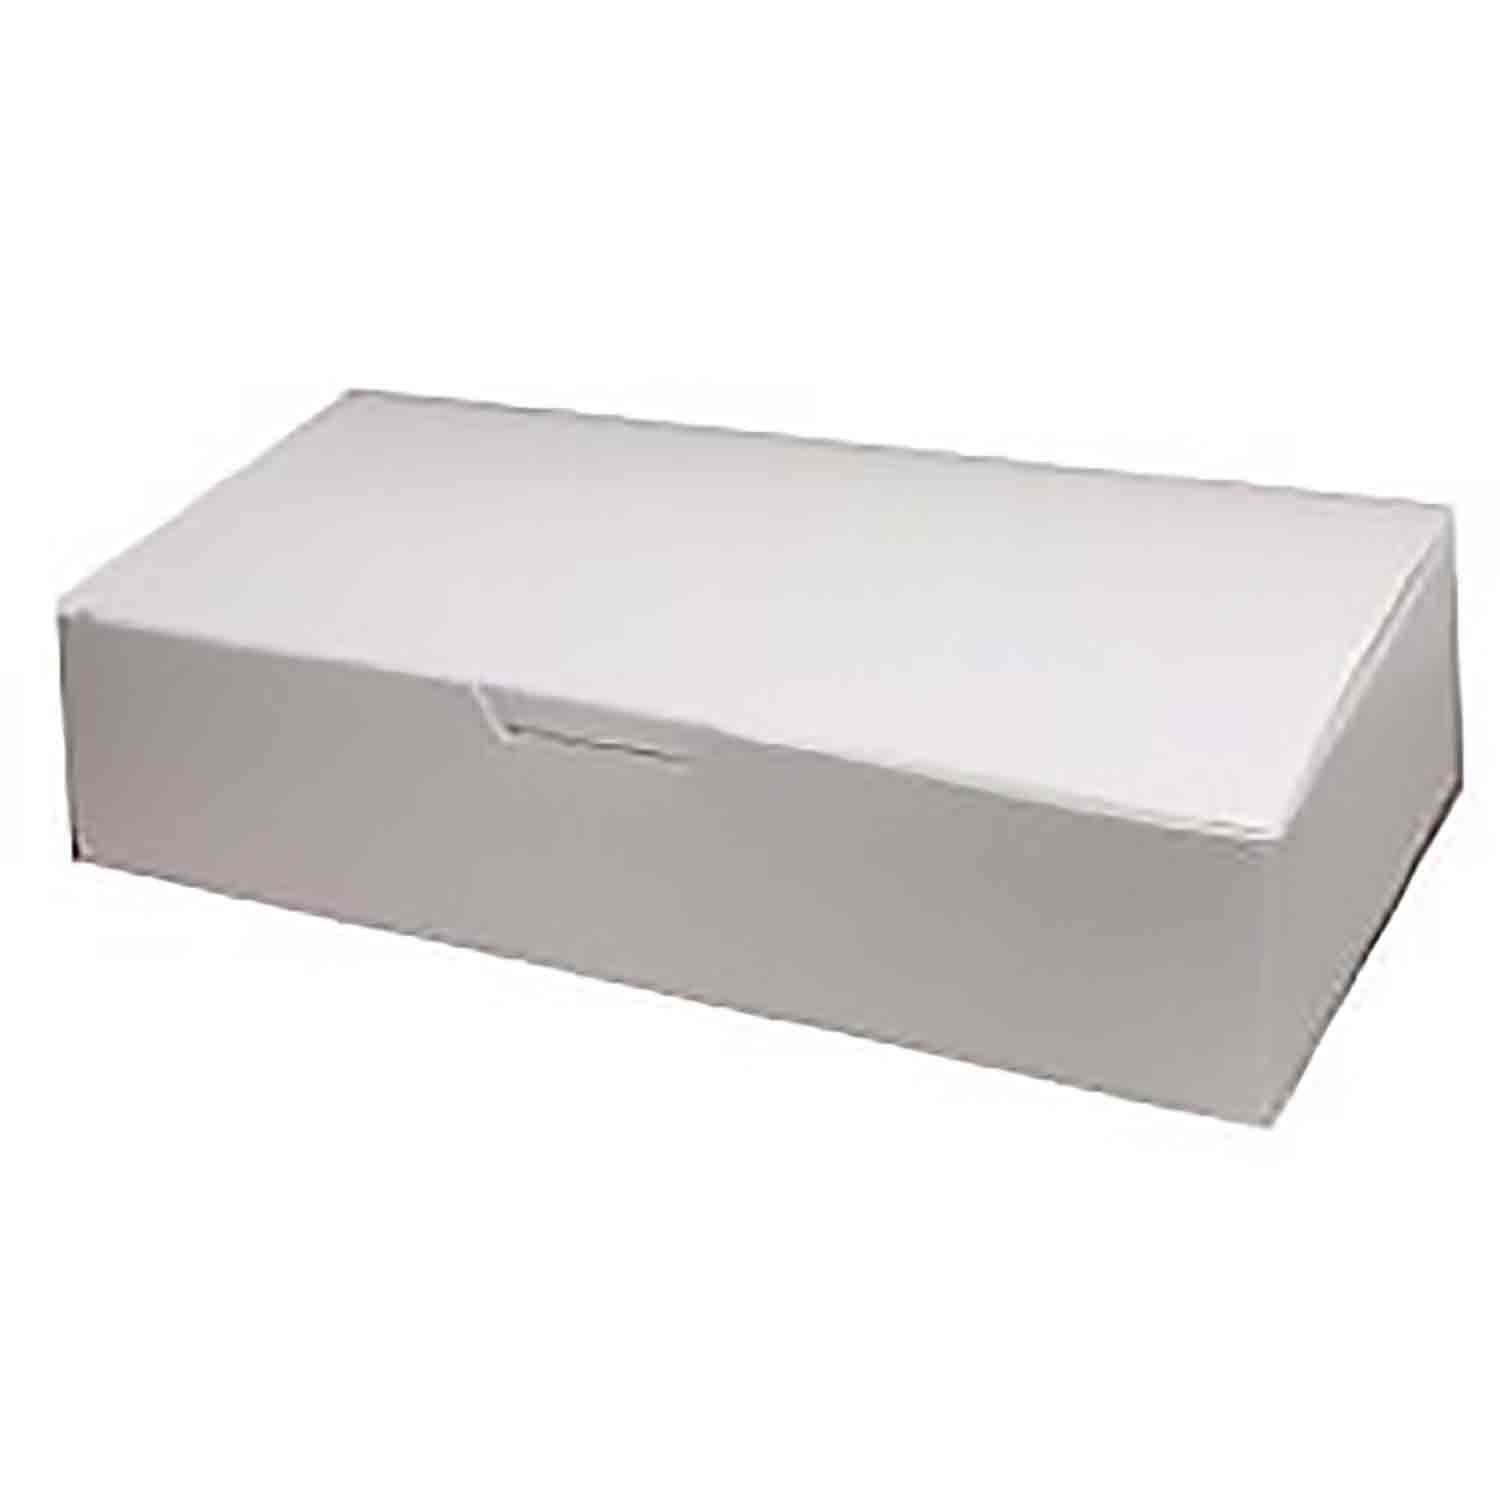 2 lb. White Candy Box